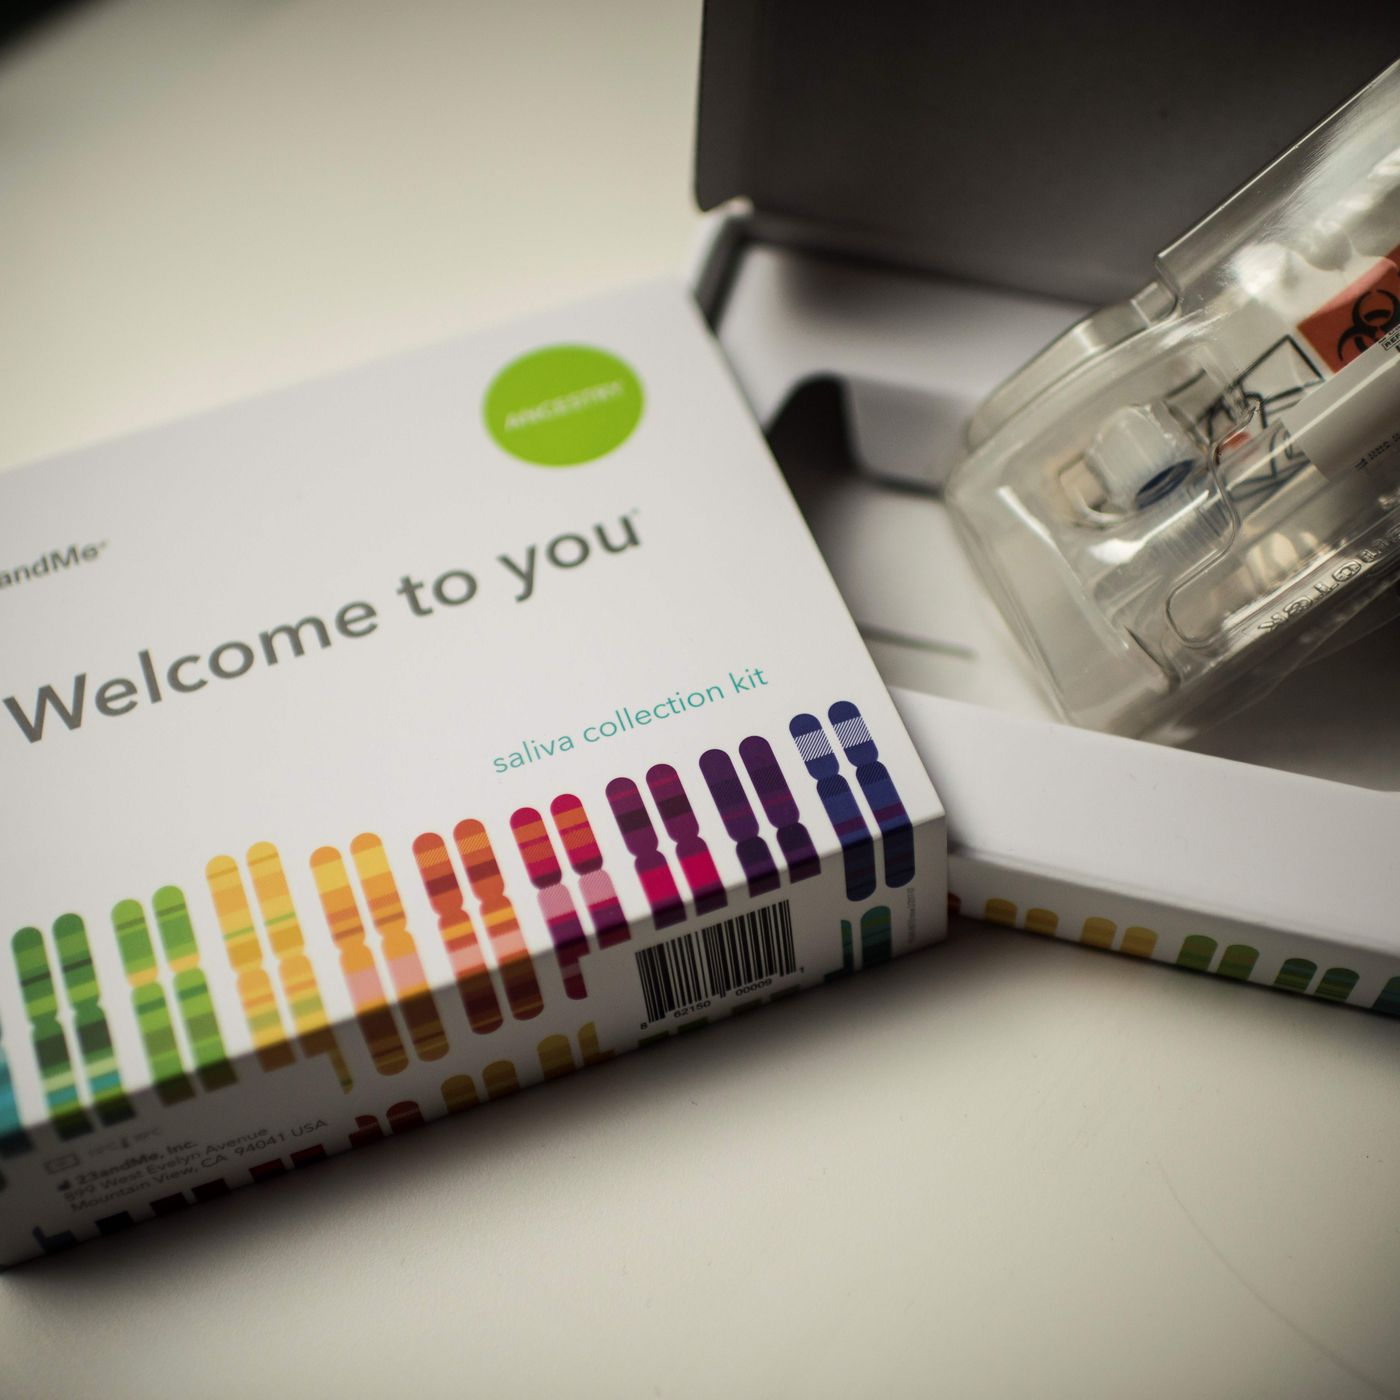 vox.com - Gaby Del Valle - Airbnb is partnering with 23andMe to send people on 'heritage' vacations